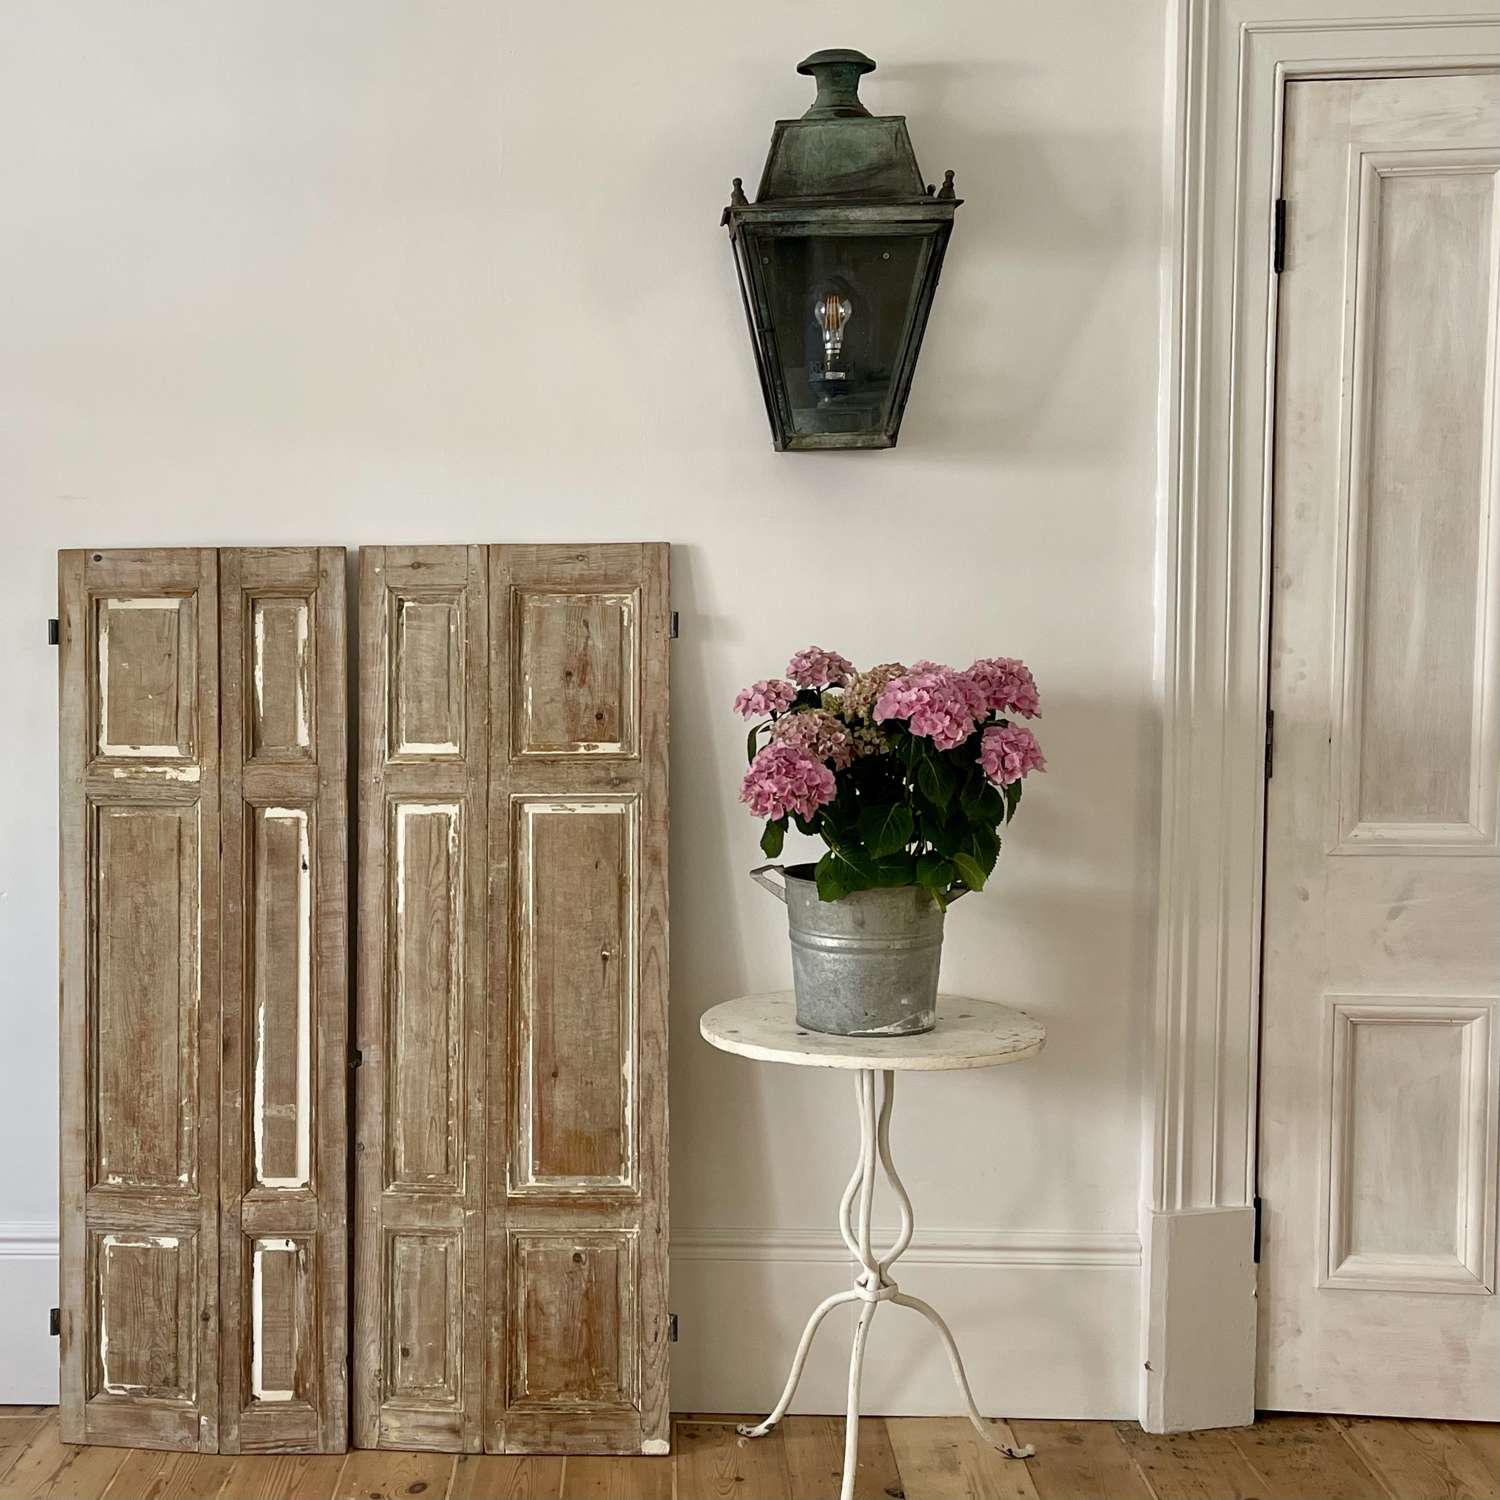 Antique French shutters